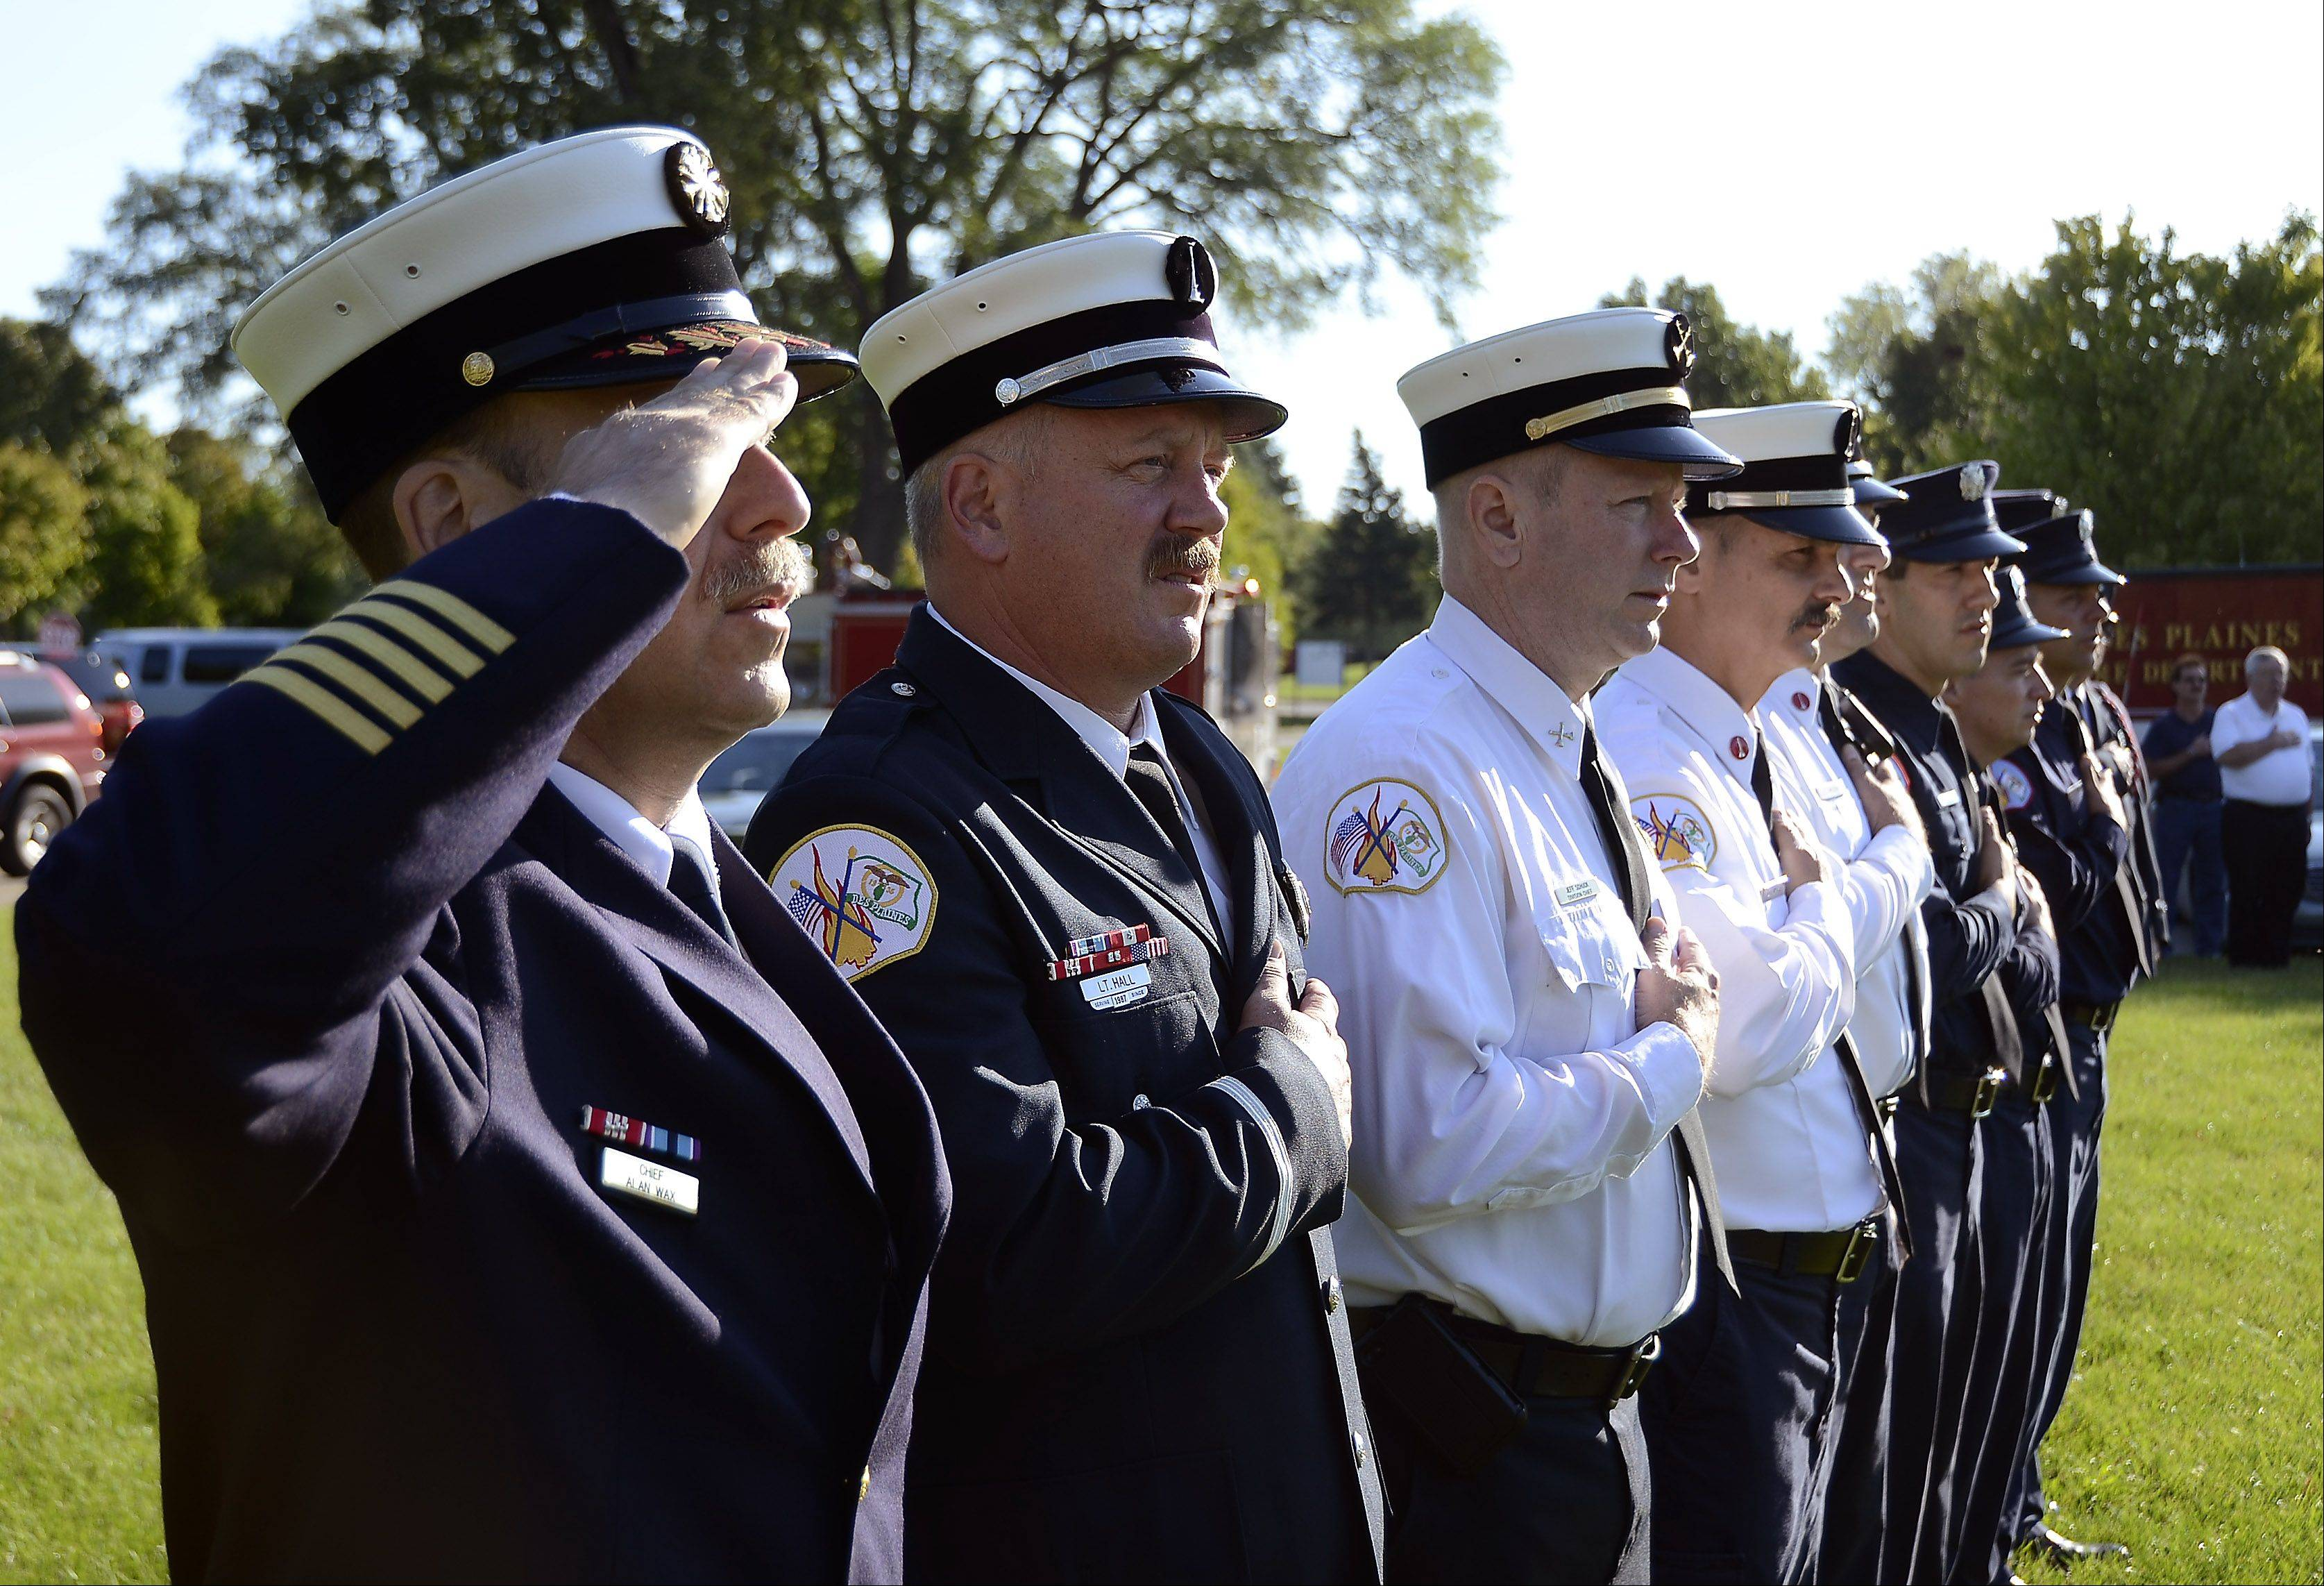 Firefighters and police say The Pledge of Allegiance during a 9/11 Patriot Day celebration at Maryville Academy in Des Plaines